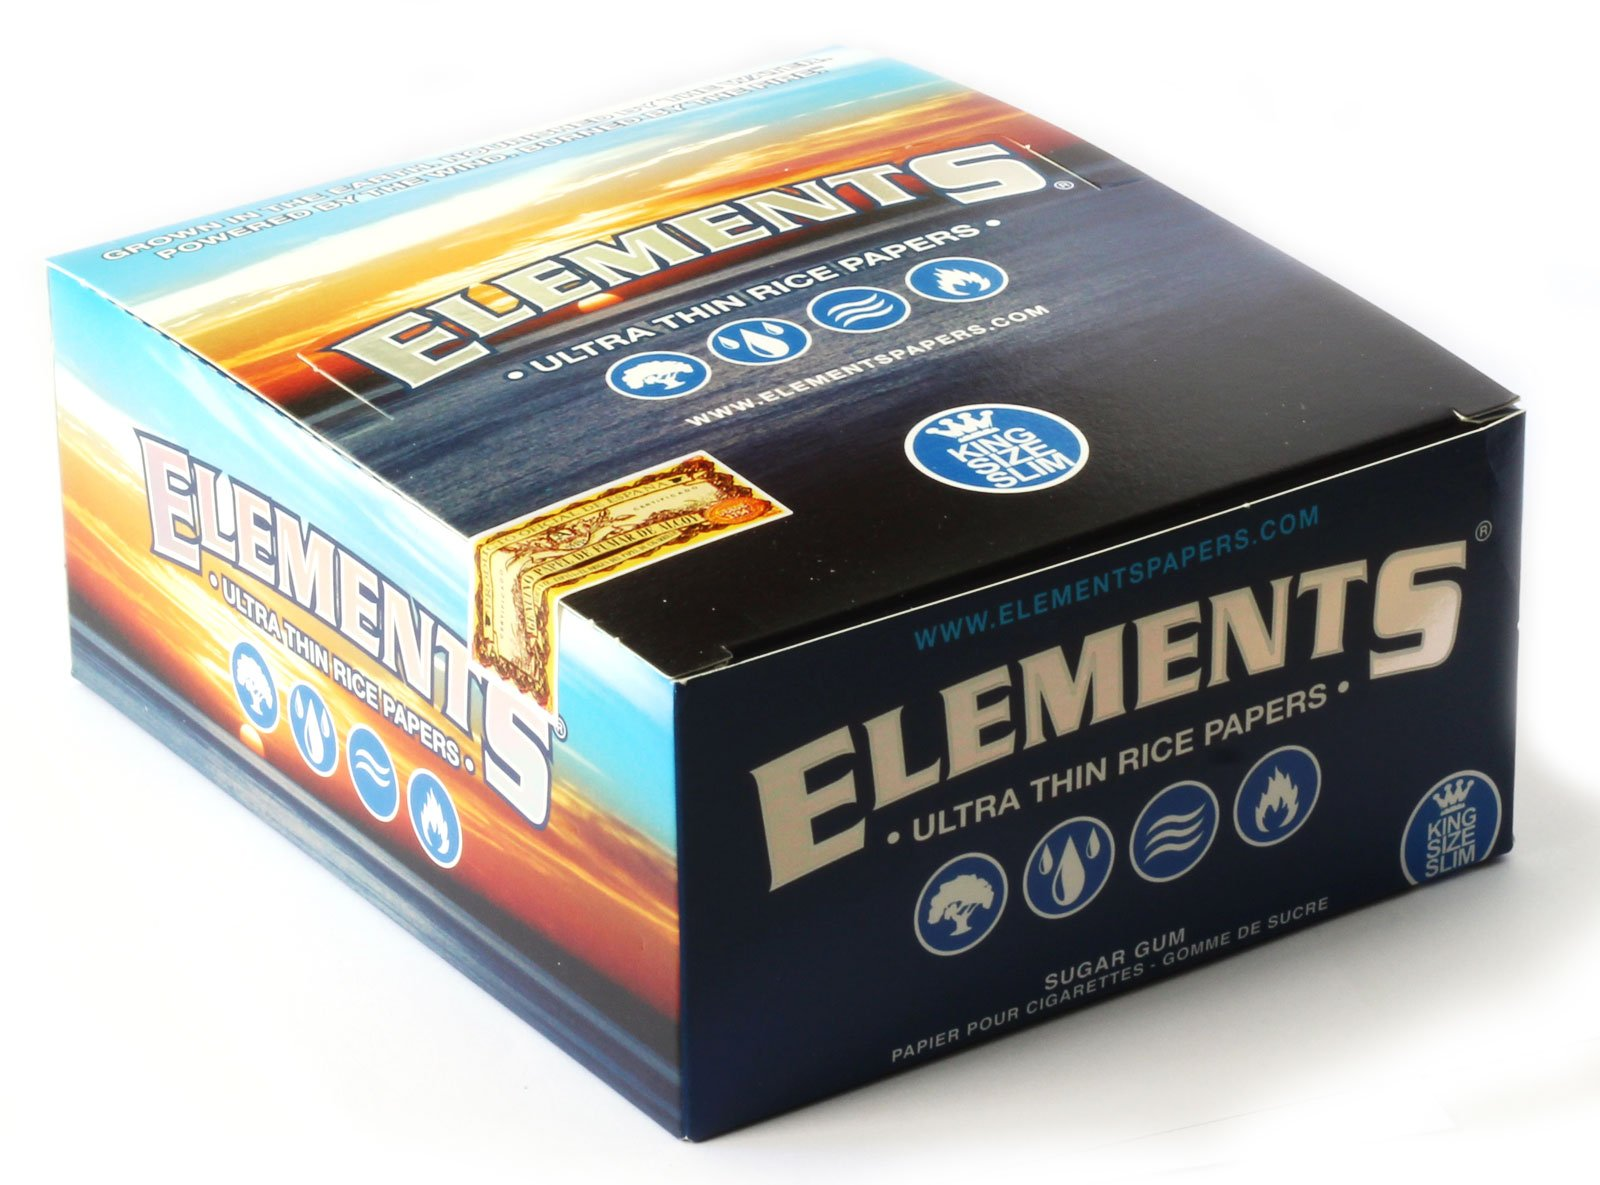 Elements King Size Slim Ultra Thin Rice Rolling Paper Full Box of 50 Packs by elements